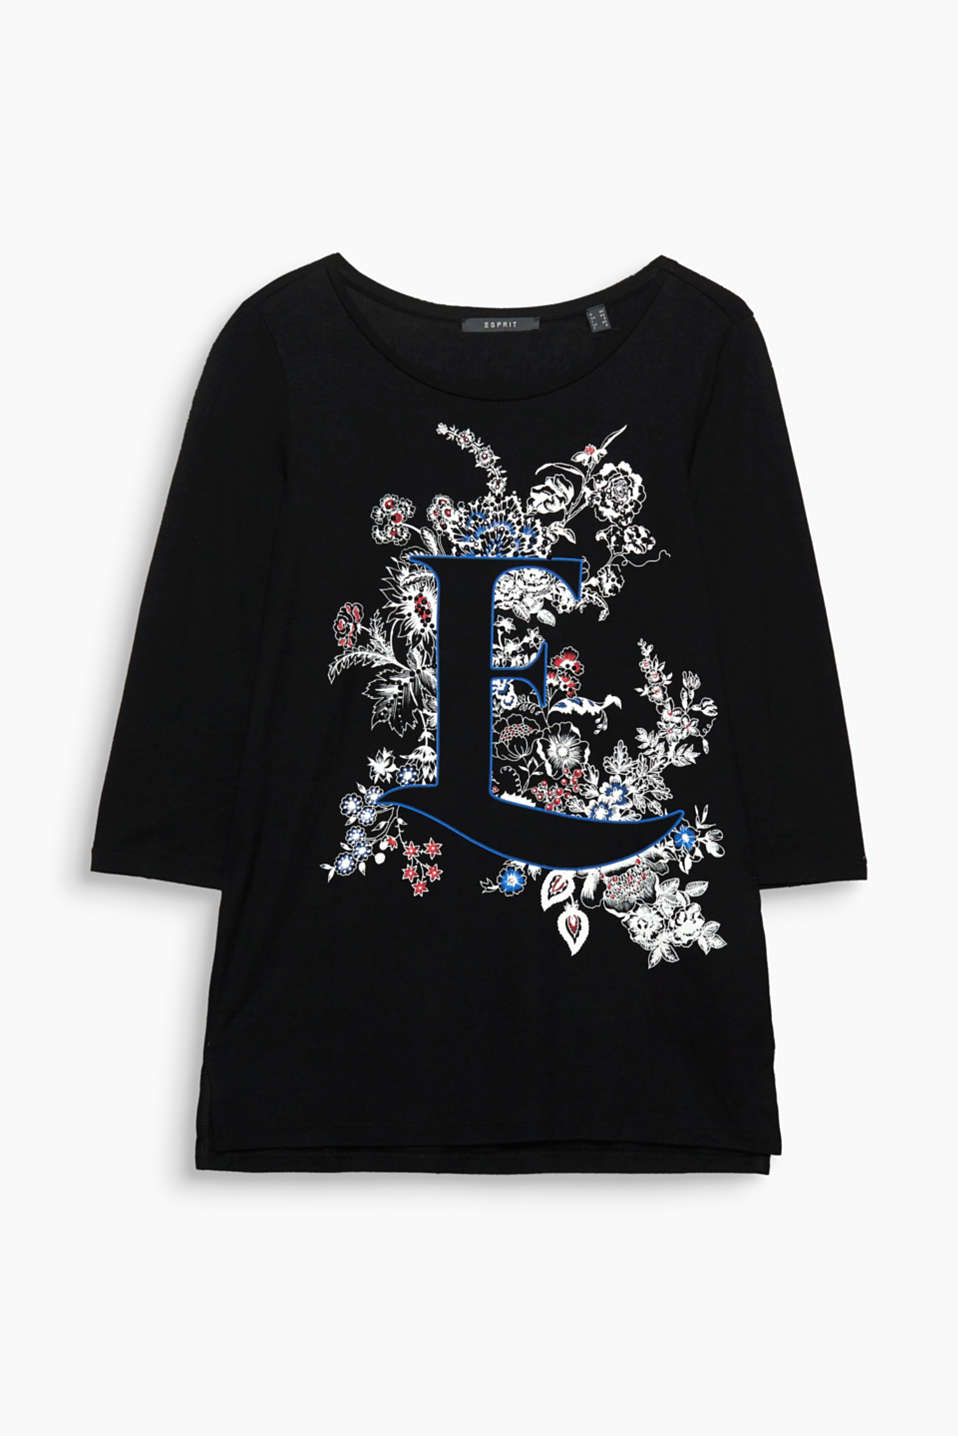 Logo with a twist: on this soft T-shirt, the characteristic E is framed by feminine floral tendrils!